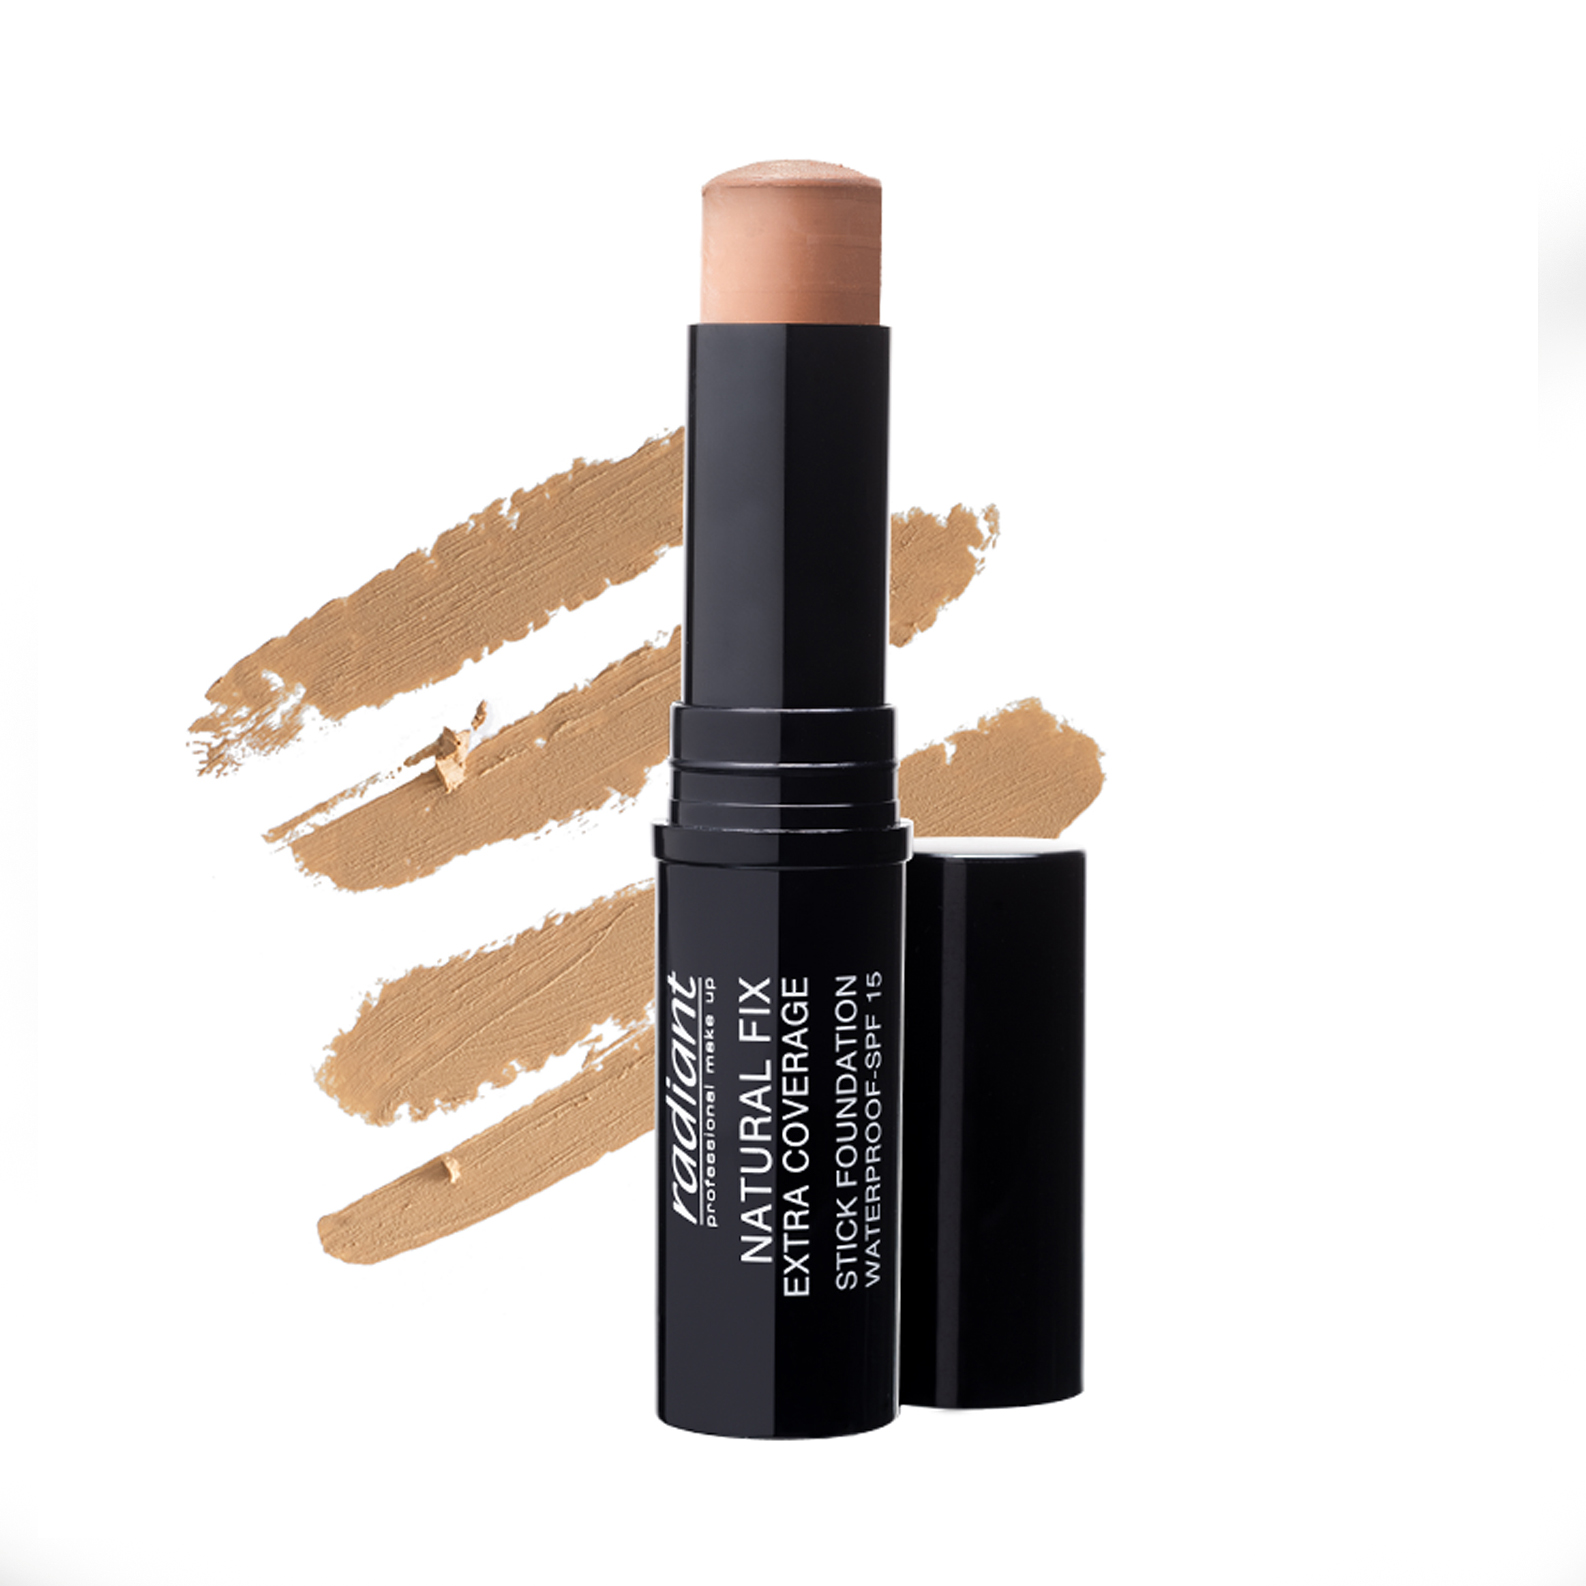 NATURAL FIX EXTRA COVERAGE STICK FOUNDATION  WATERPROOF SPF 15